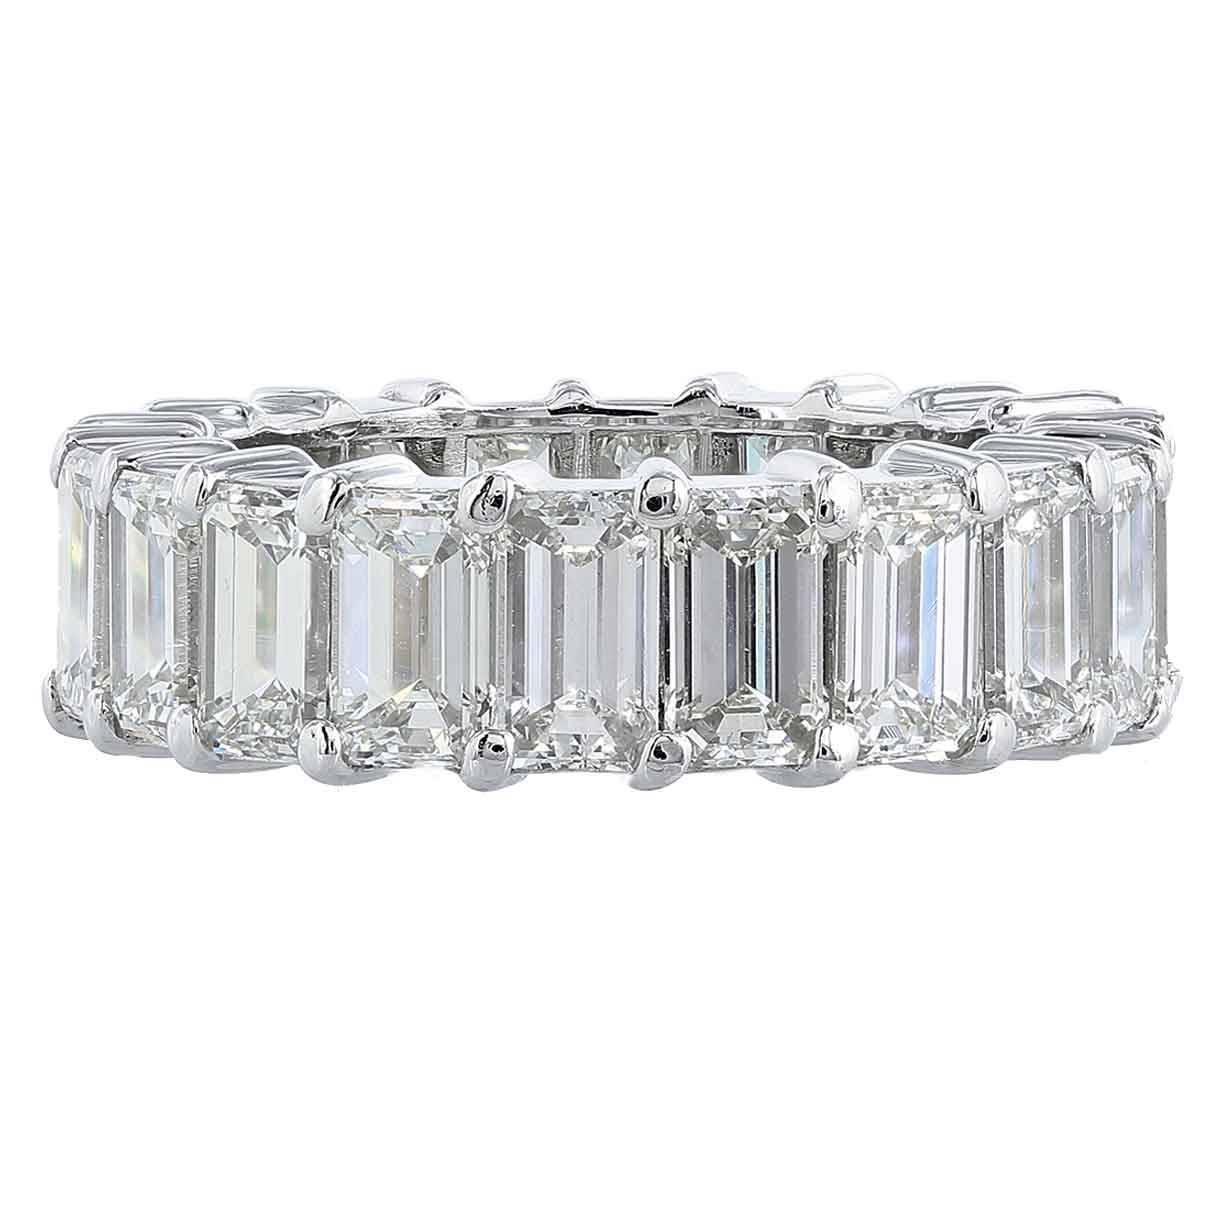 829 Carat Emerald Cut Diamond Platinum Eternity Band Ring. Ornate Wedding Rings. Flower Cut Engagement Rings. Lace Rings. Large Gold Bangle. Craft Watches. Light Green Sapphire. 3 Diamond Anniversary Band. Love Bands